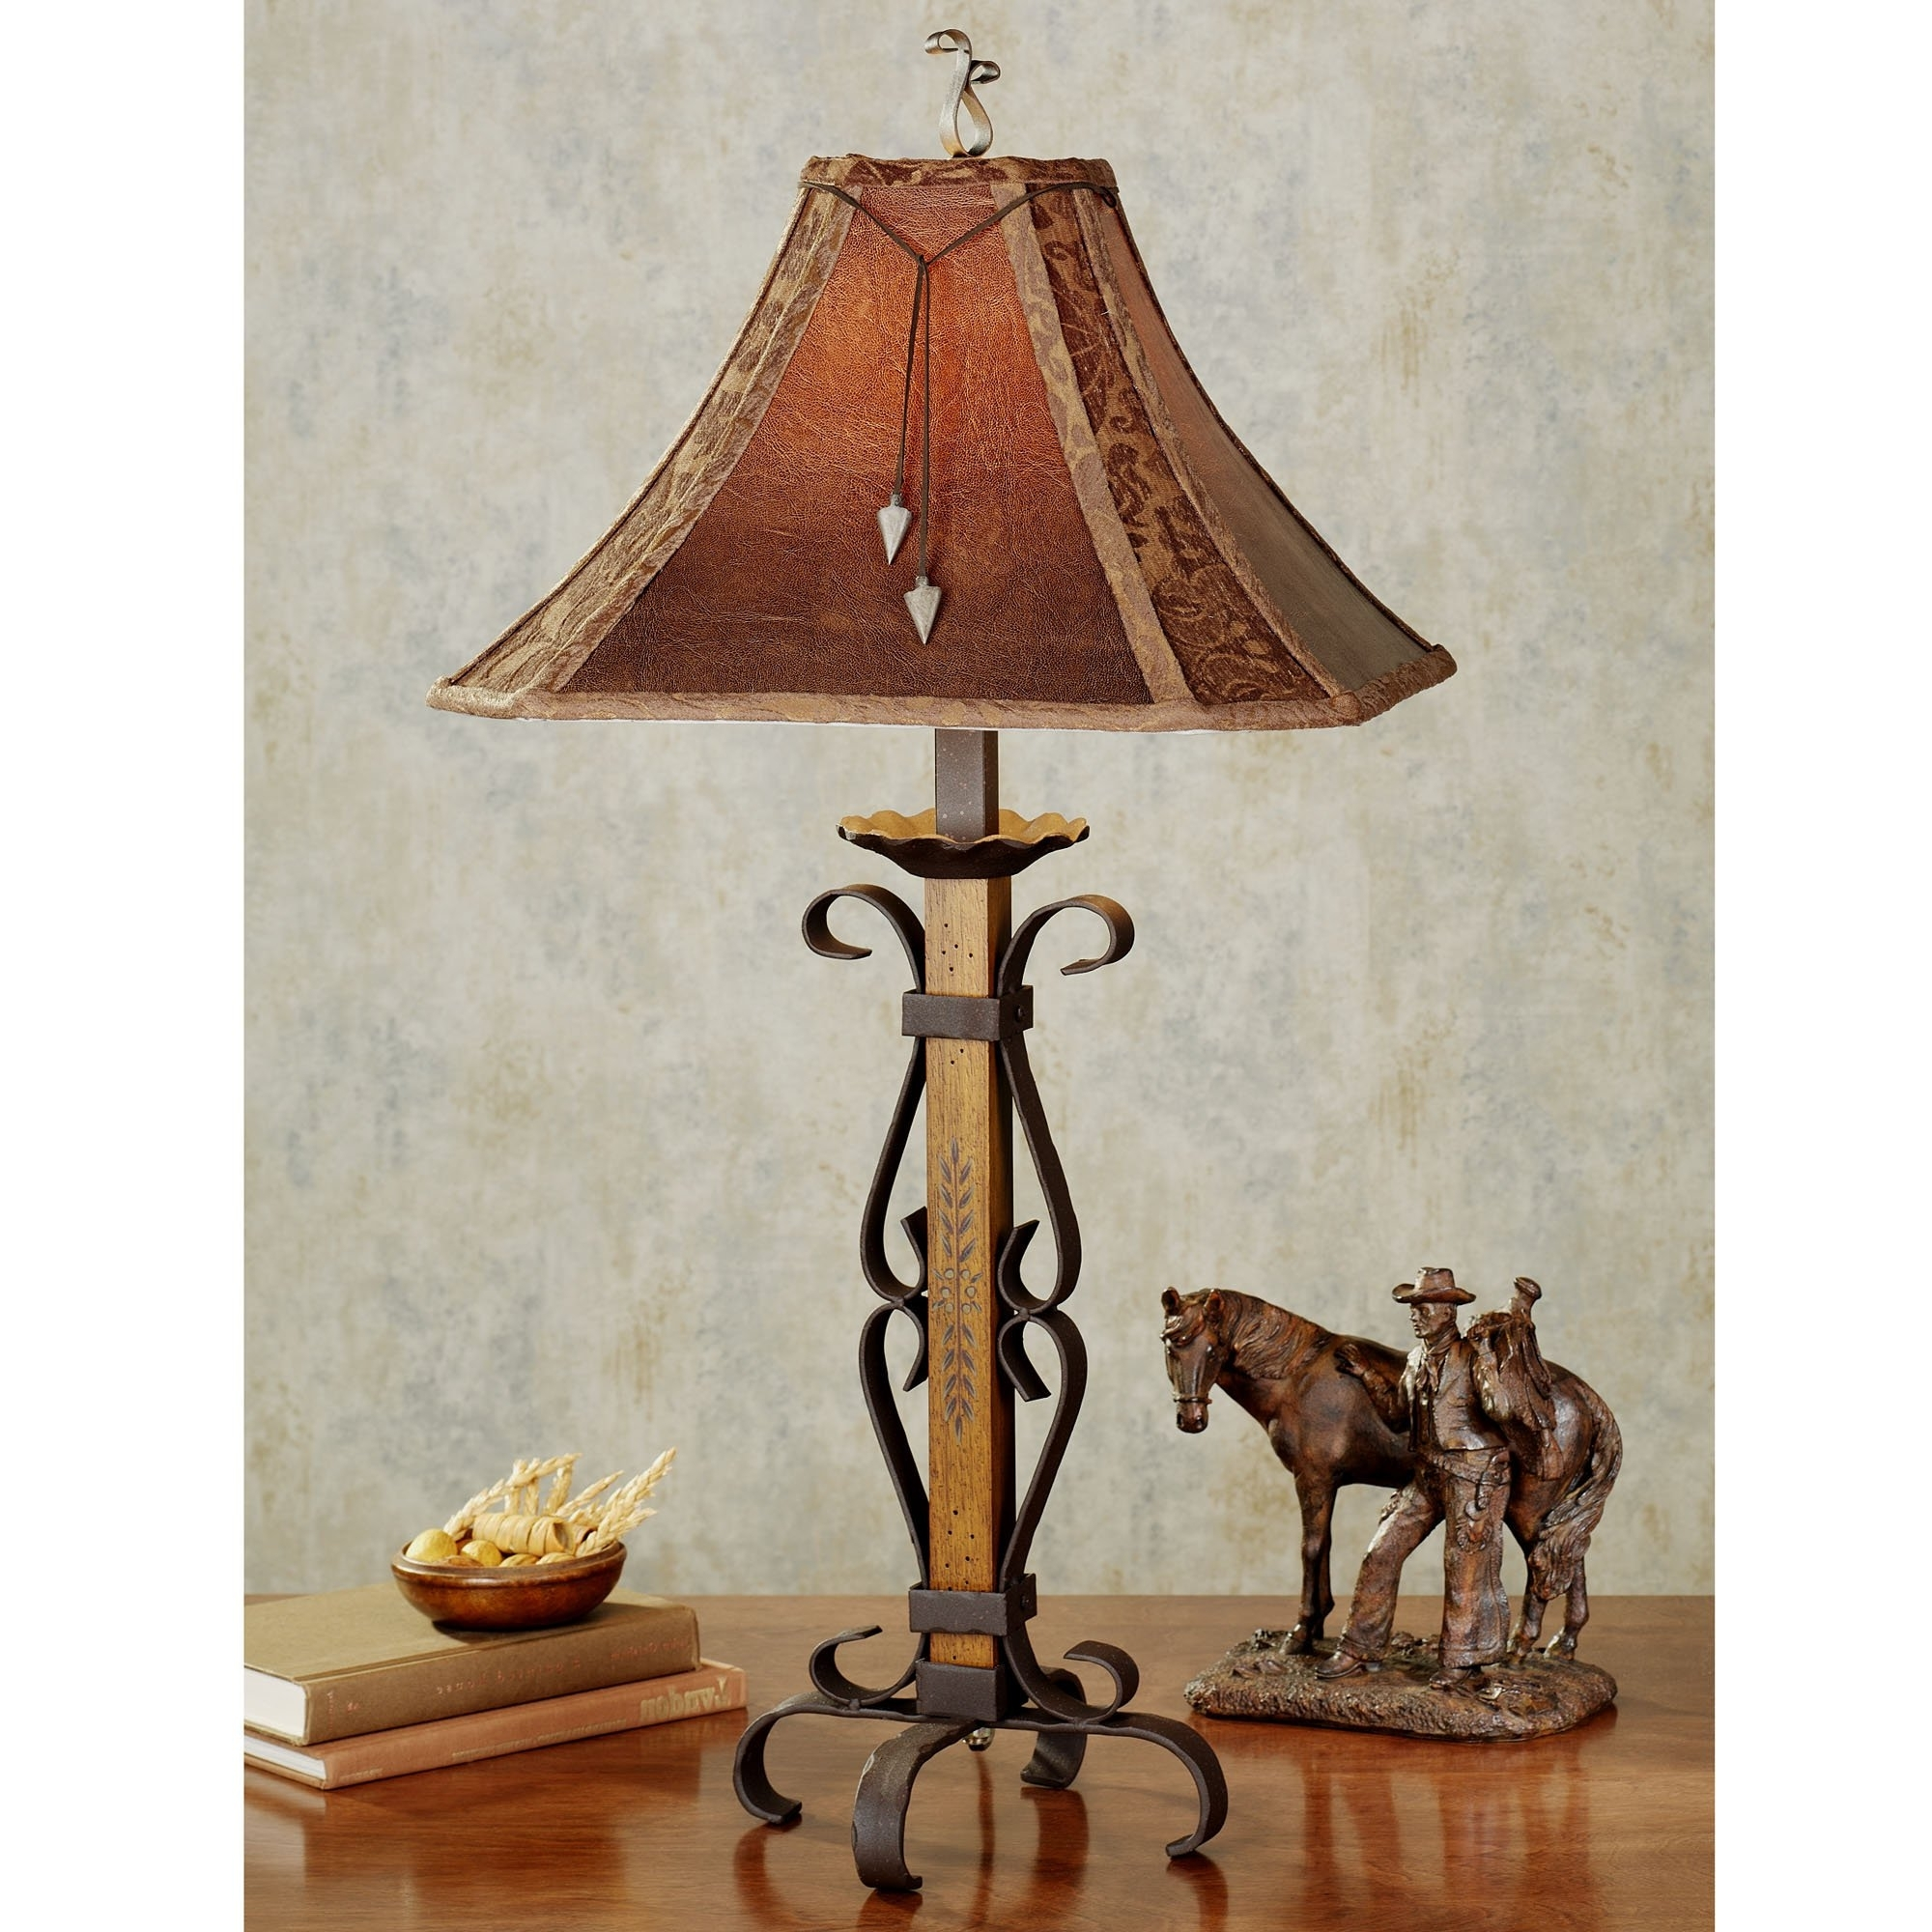 Popular Rustic Living Room Table Lamps Regarding Rustic Living Room Table Lamps Modern House, Rustic Contemporary (Gallery 4 of 20)